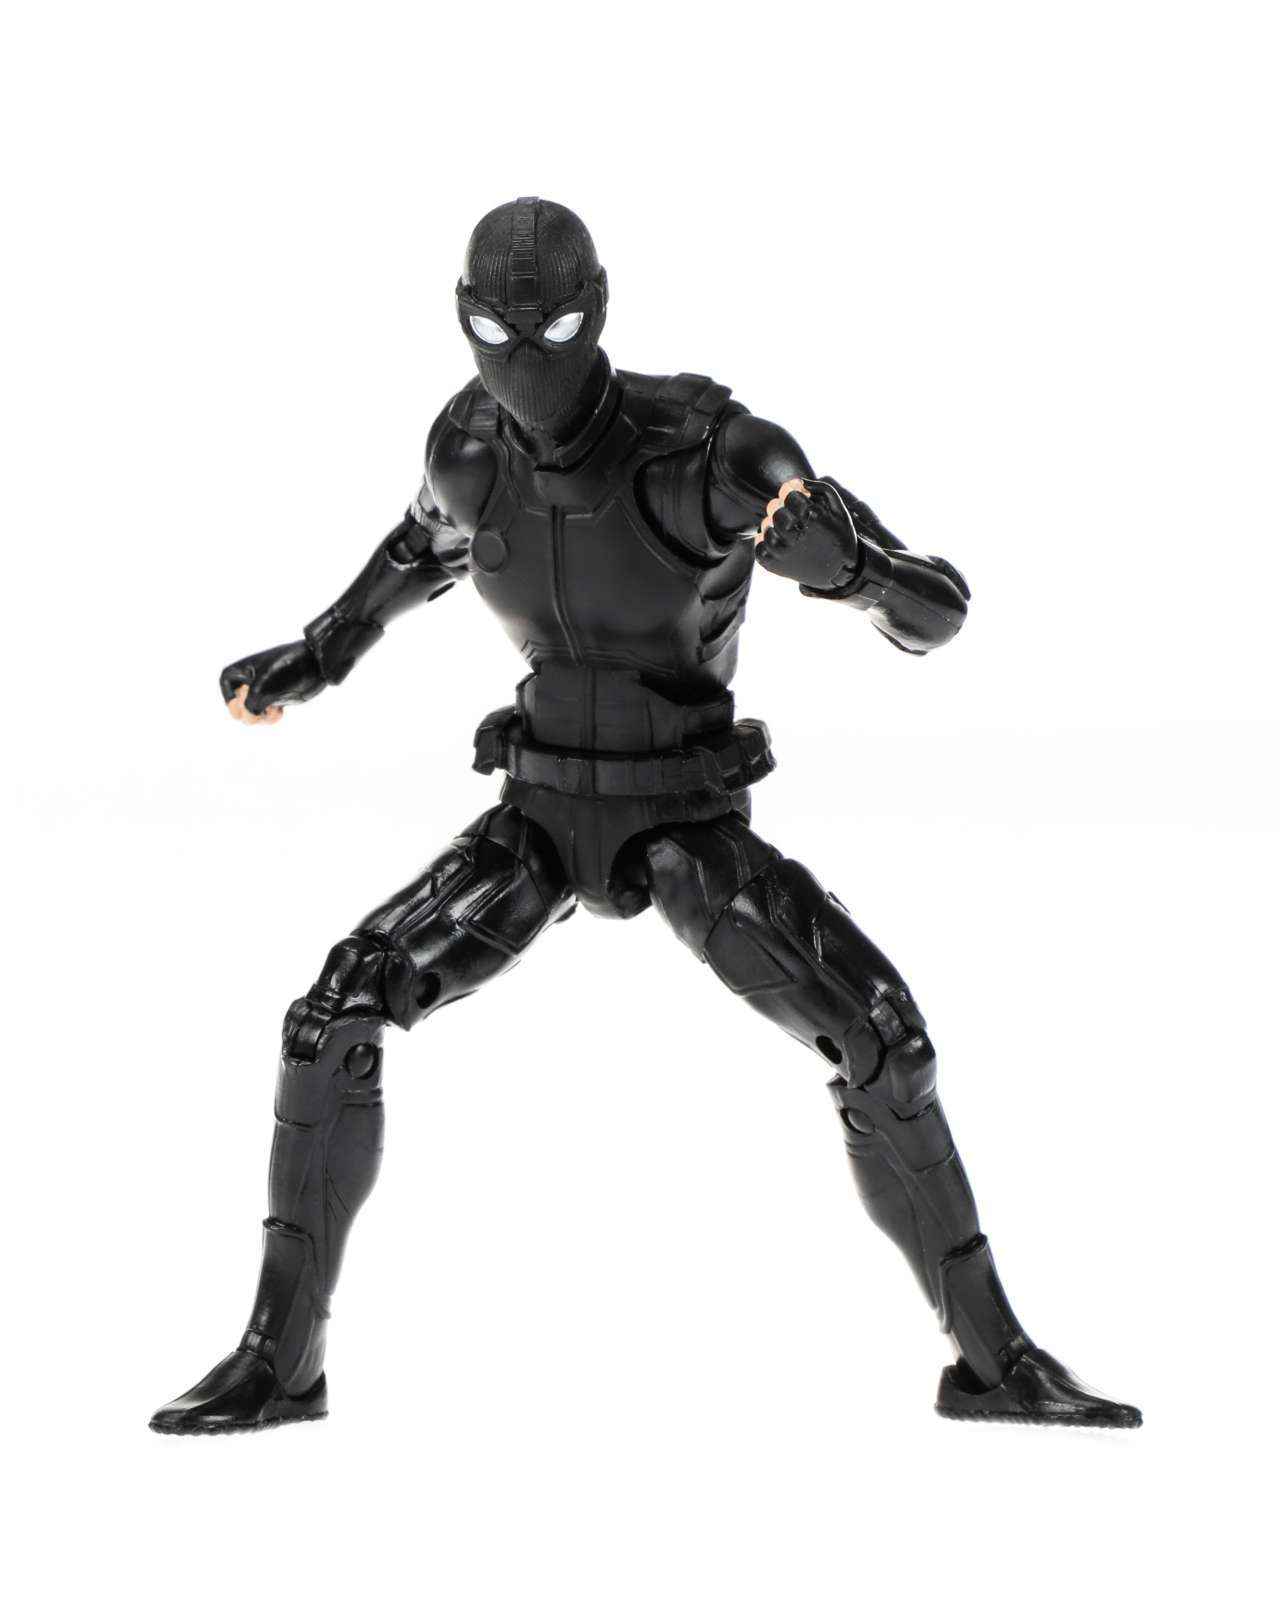 Marvel Spider-Man Legends Series 6-Inch Spider-Man Stealth Suit Figure oop